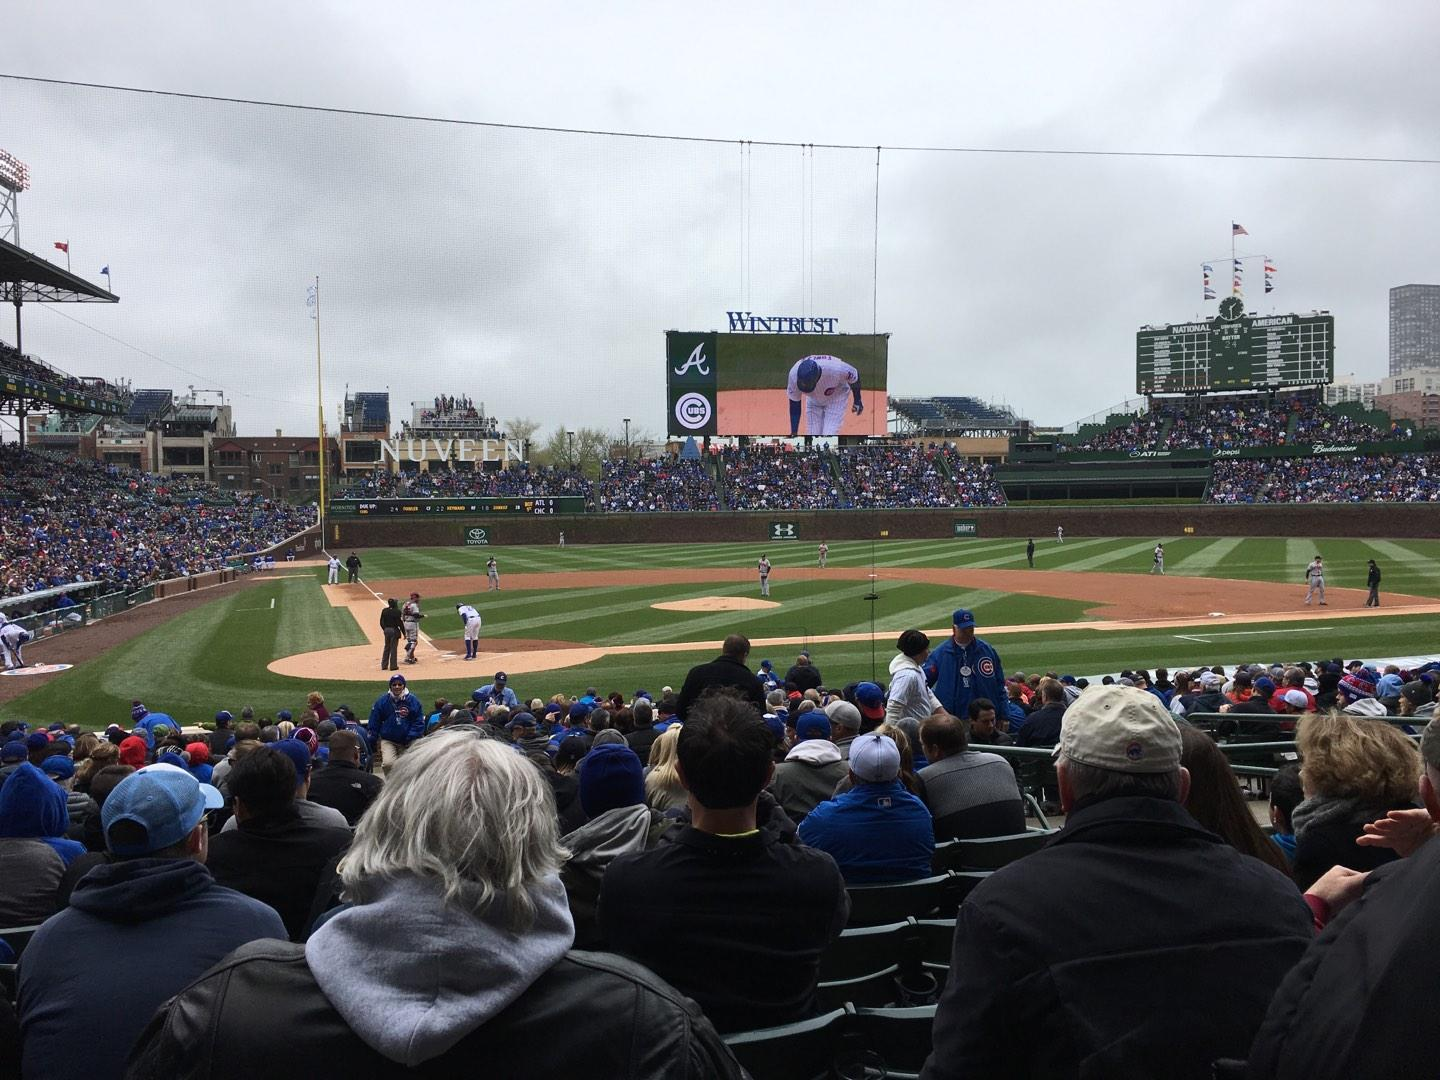 Wrigley Field section 124 row 10 seat 5 - Chicago Cubs vs Atlanta Braves Shared Anonymously